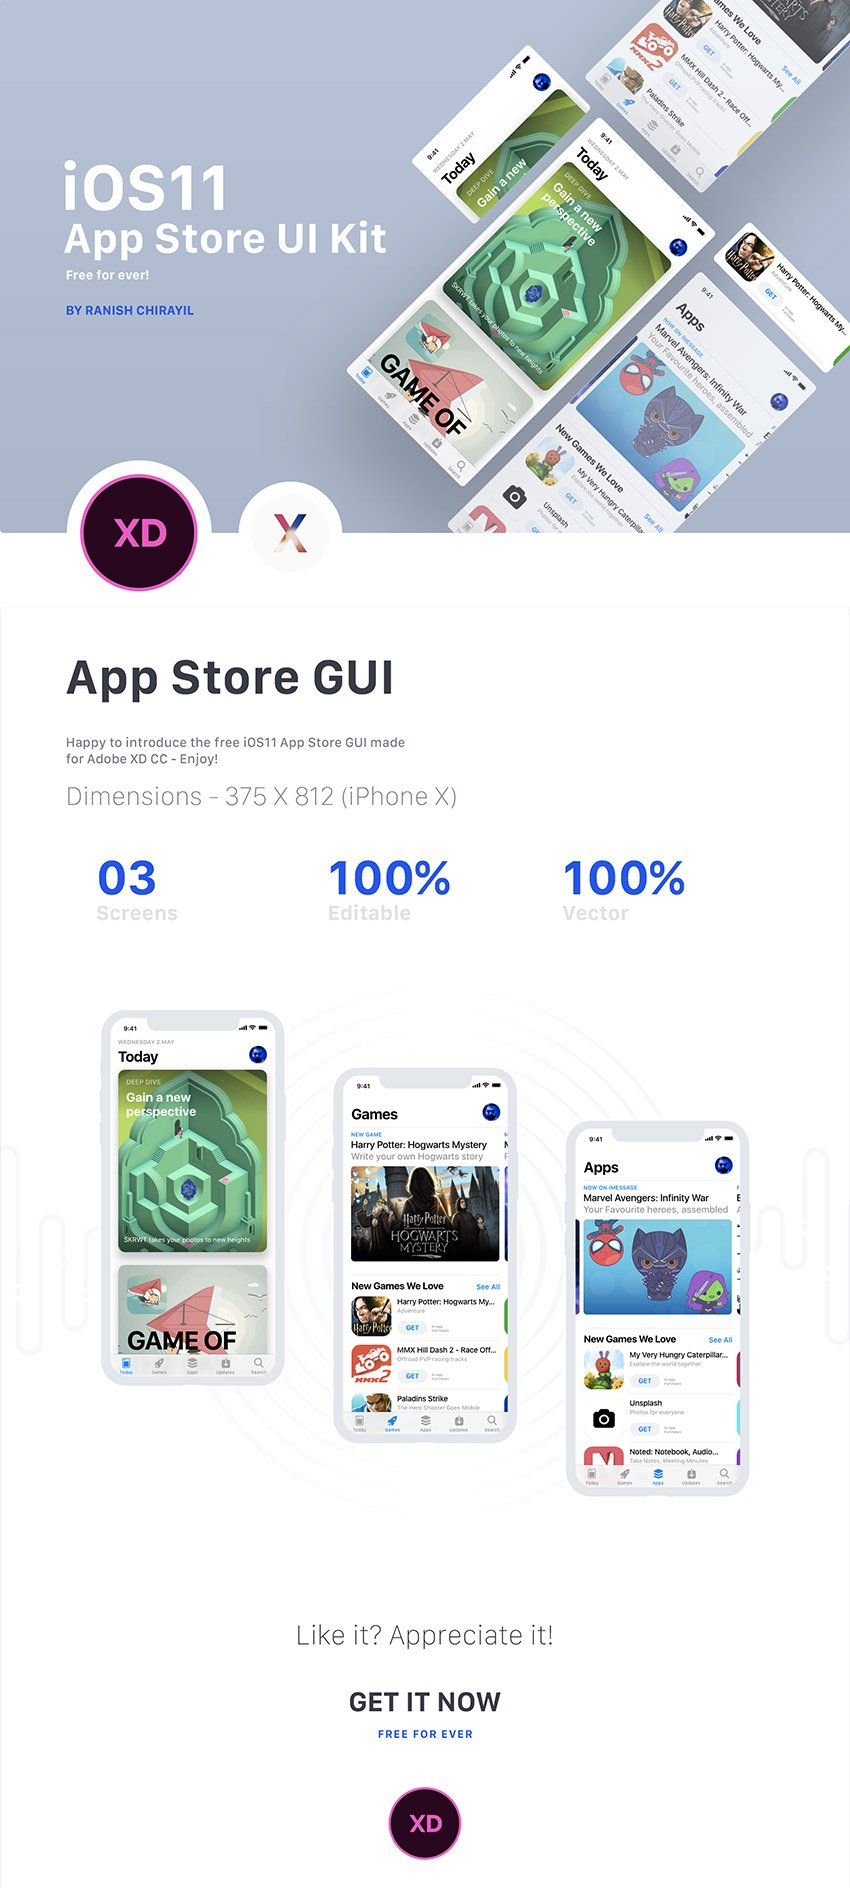 iOS11 App Store UI Kit - Adobe Xd